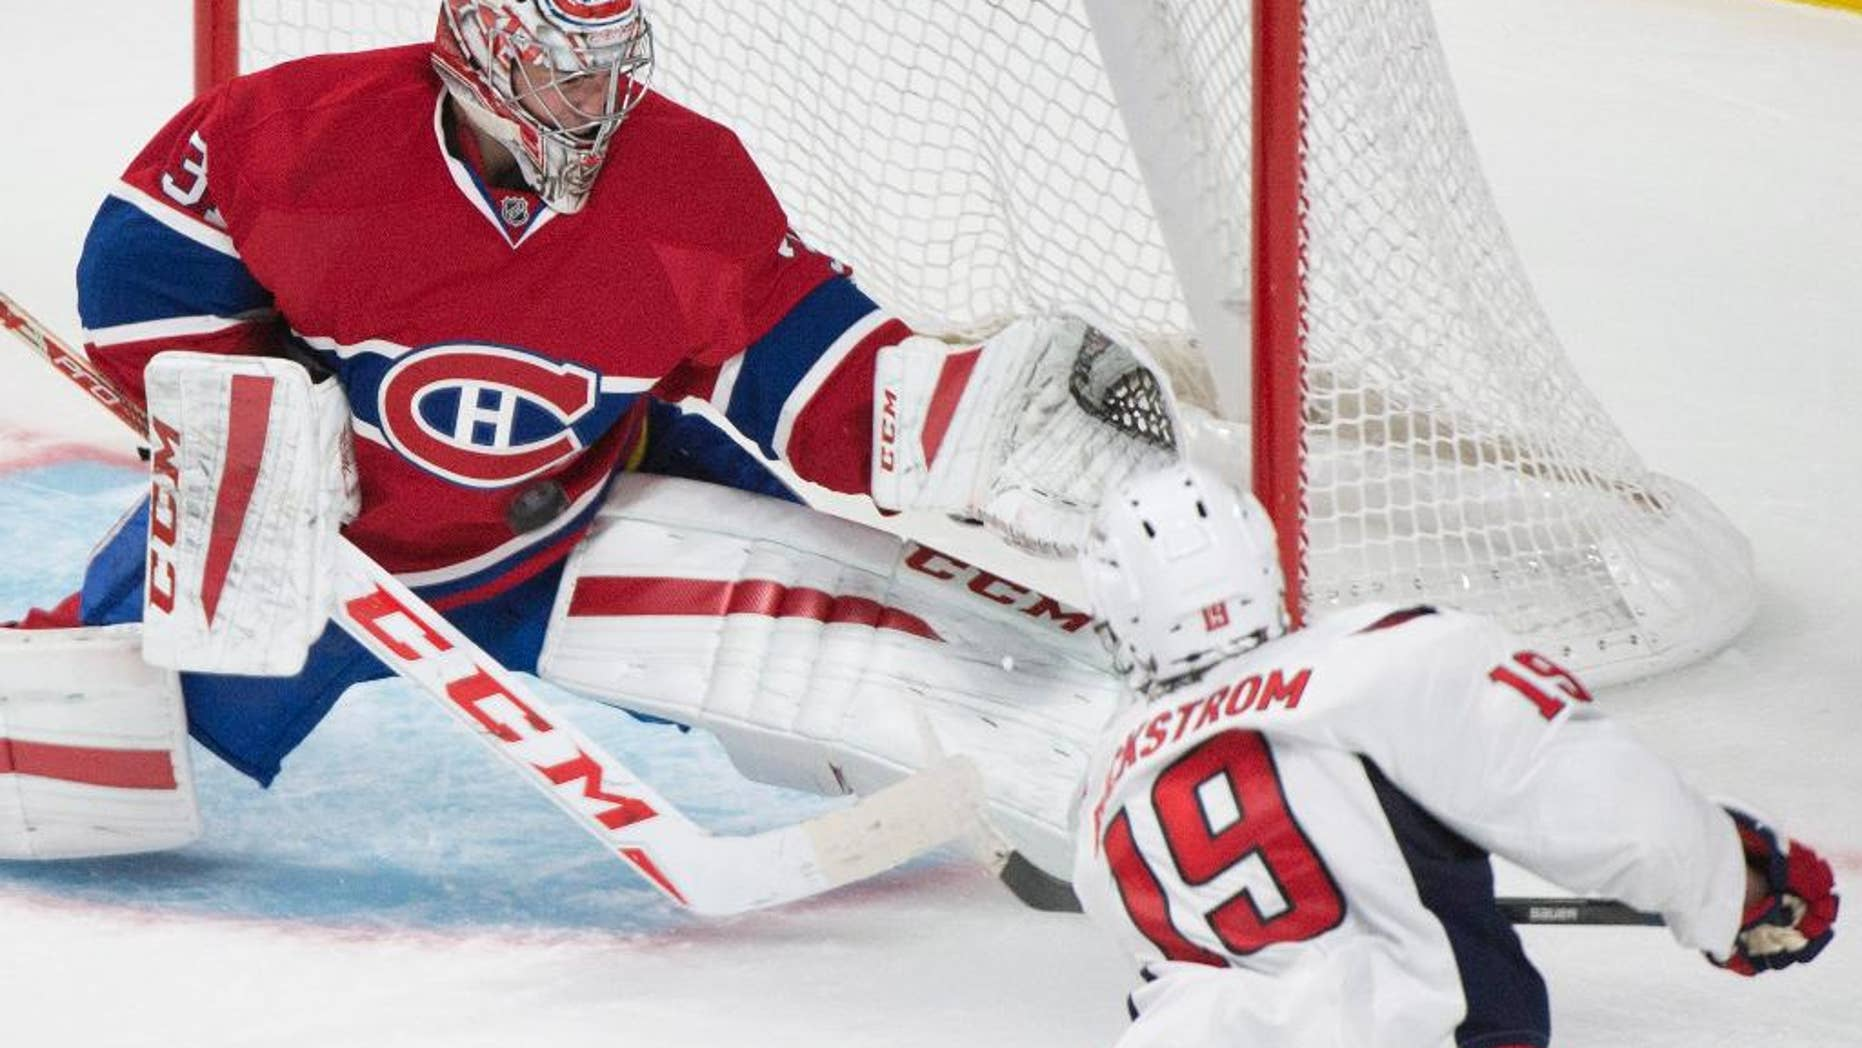 Montreal Canadiens goaltender Carey Price (31) makes a save against Washington Capitals Nicklas Backstrom during the third period of an NHL hockey preseason game Sunday, Sept. 28, 2014, in Montreal. (AP Photo/Graham Hughes)